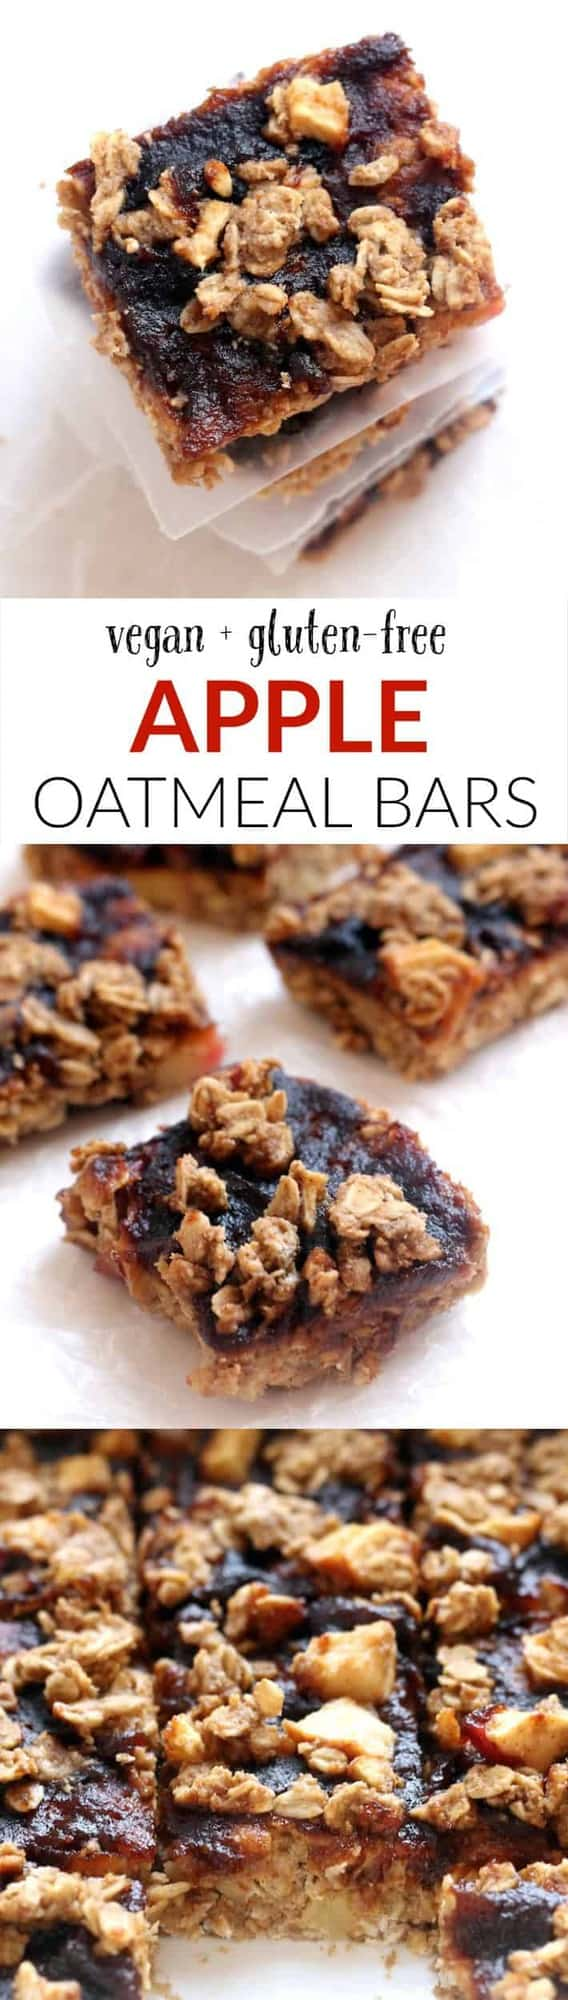 These wholesome, healthy, and delicious gluten-free apple oatmeal bars make the perfect fall treat.